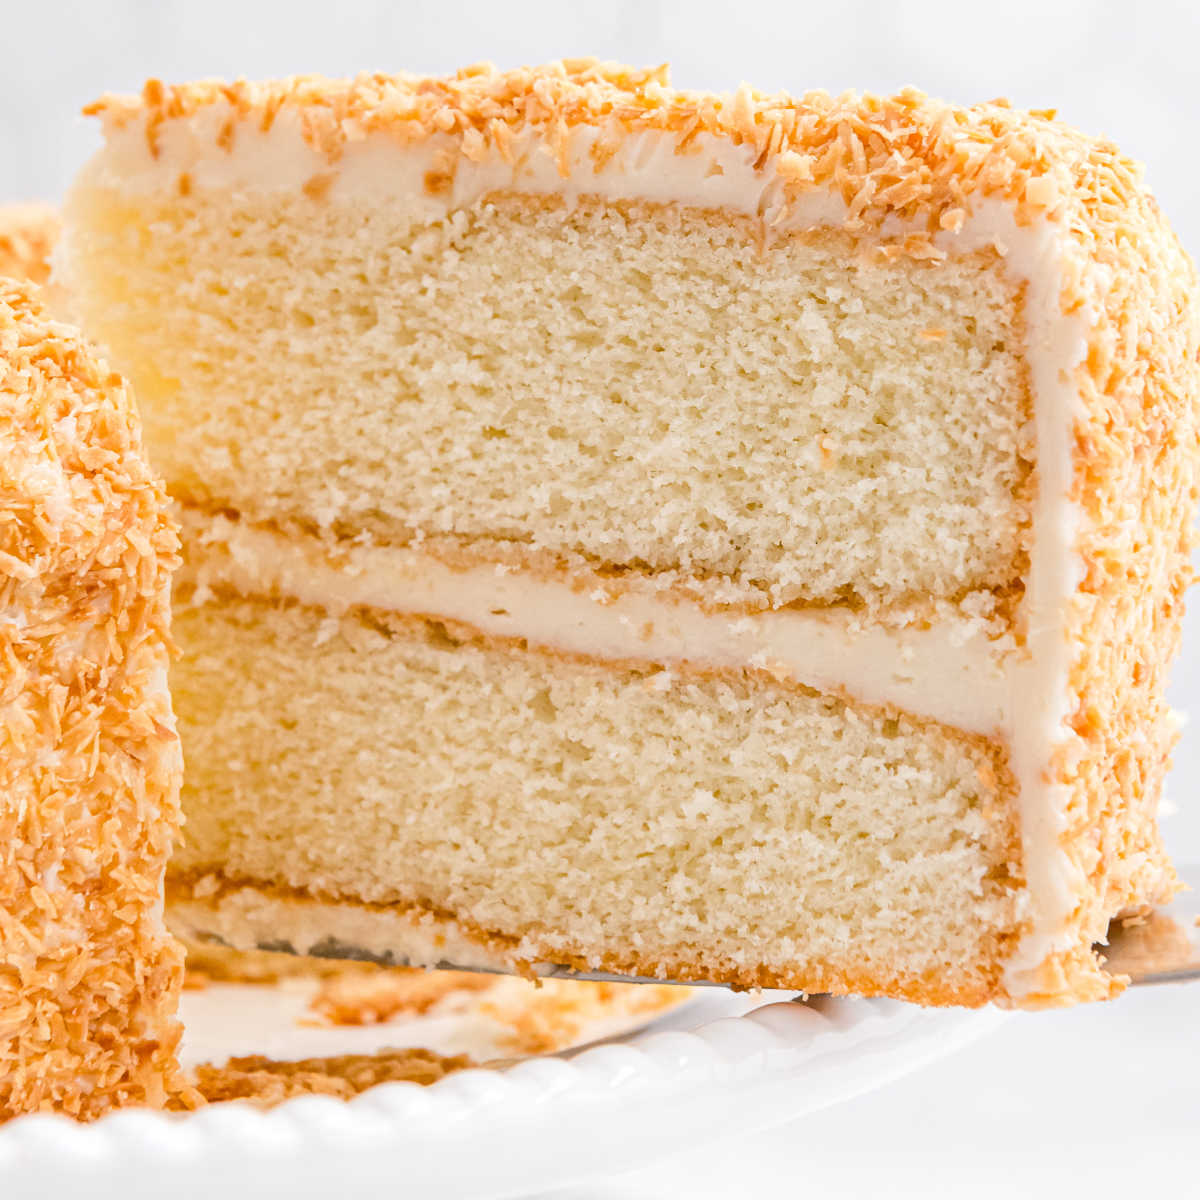 The finished coconut cake that is covered in coconut on a white cake stand.